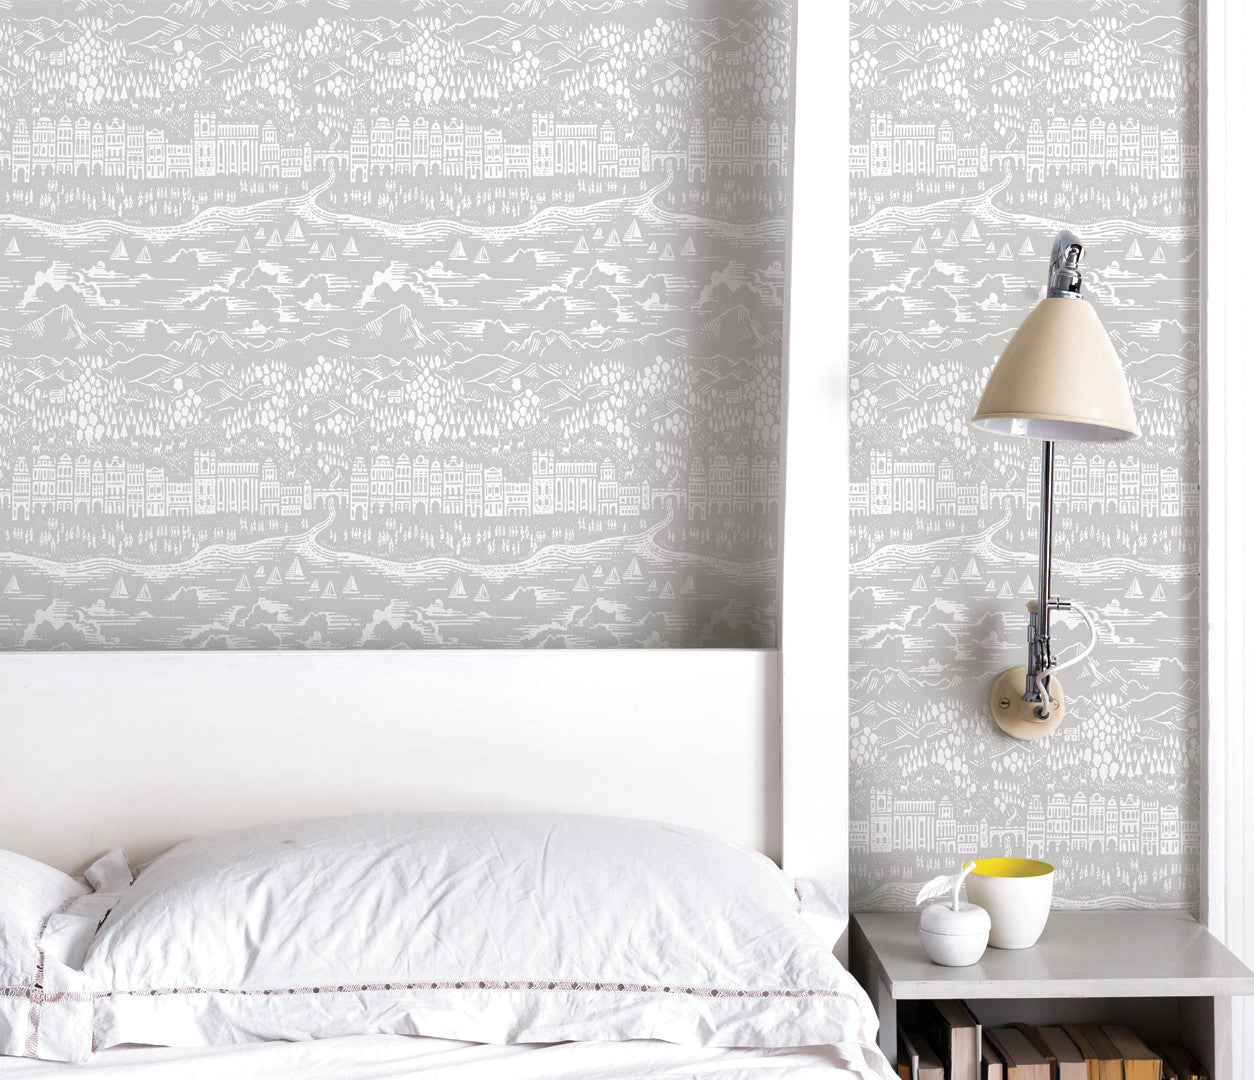 'Province' Town & Country Wallpaper in Natural Grey